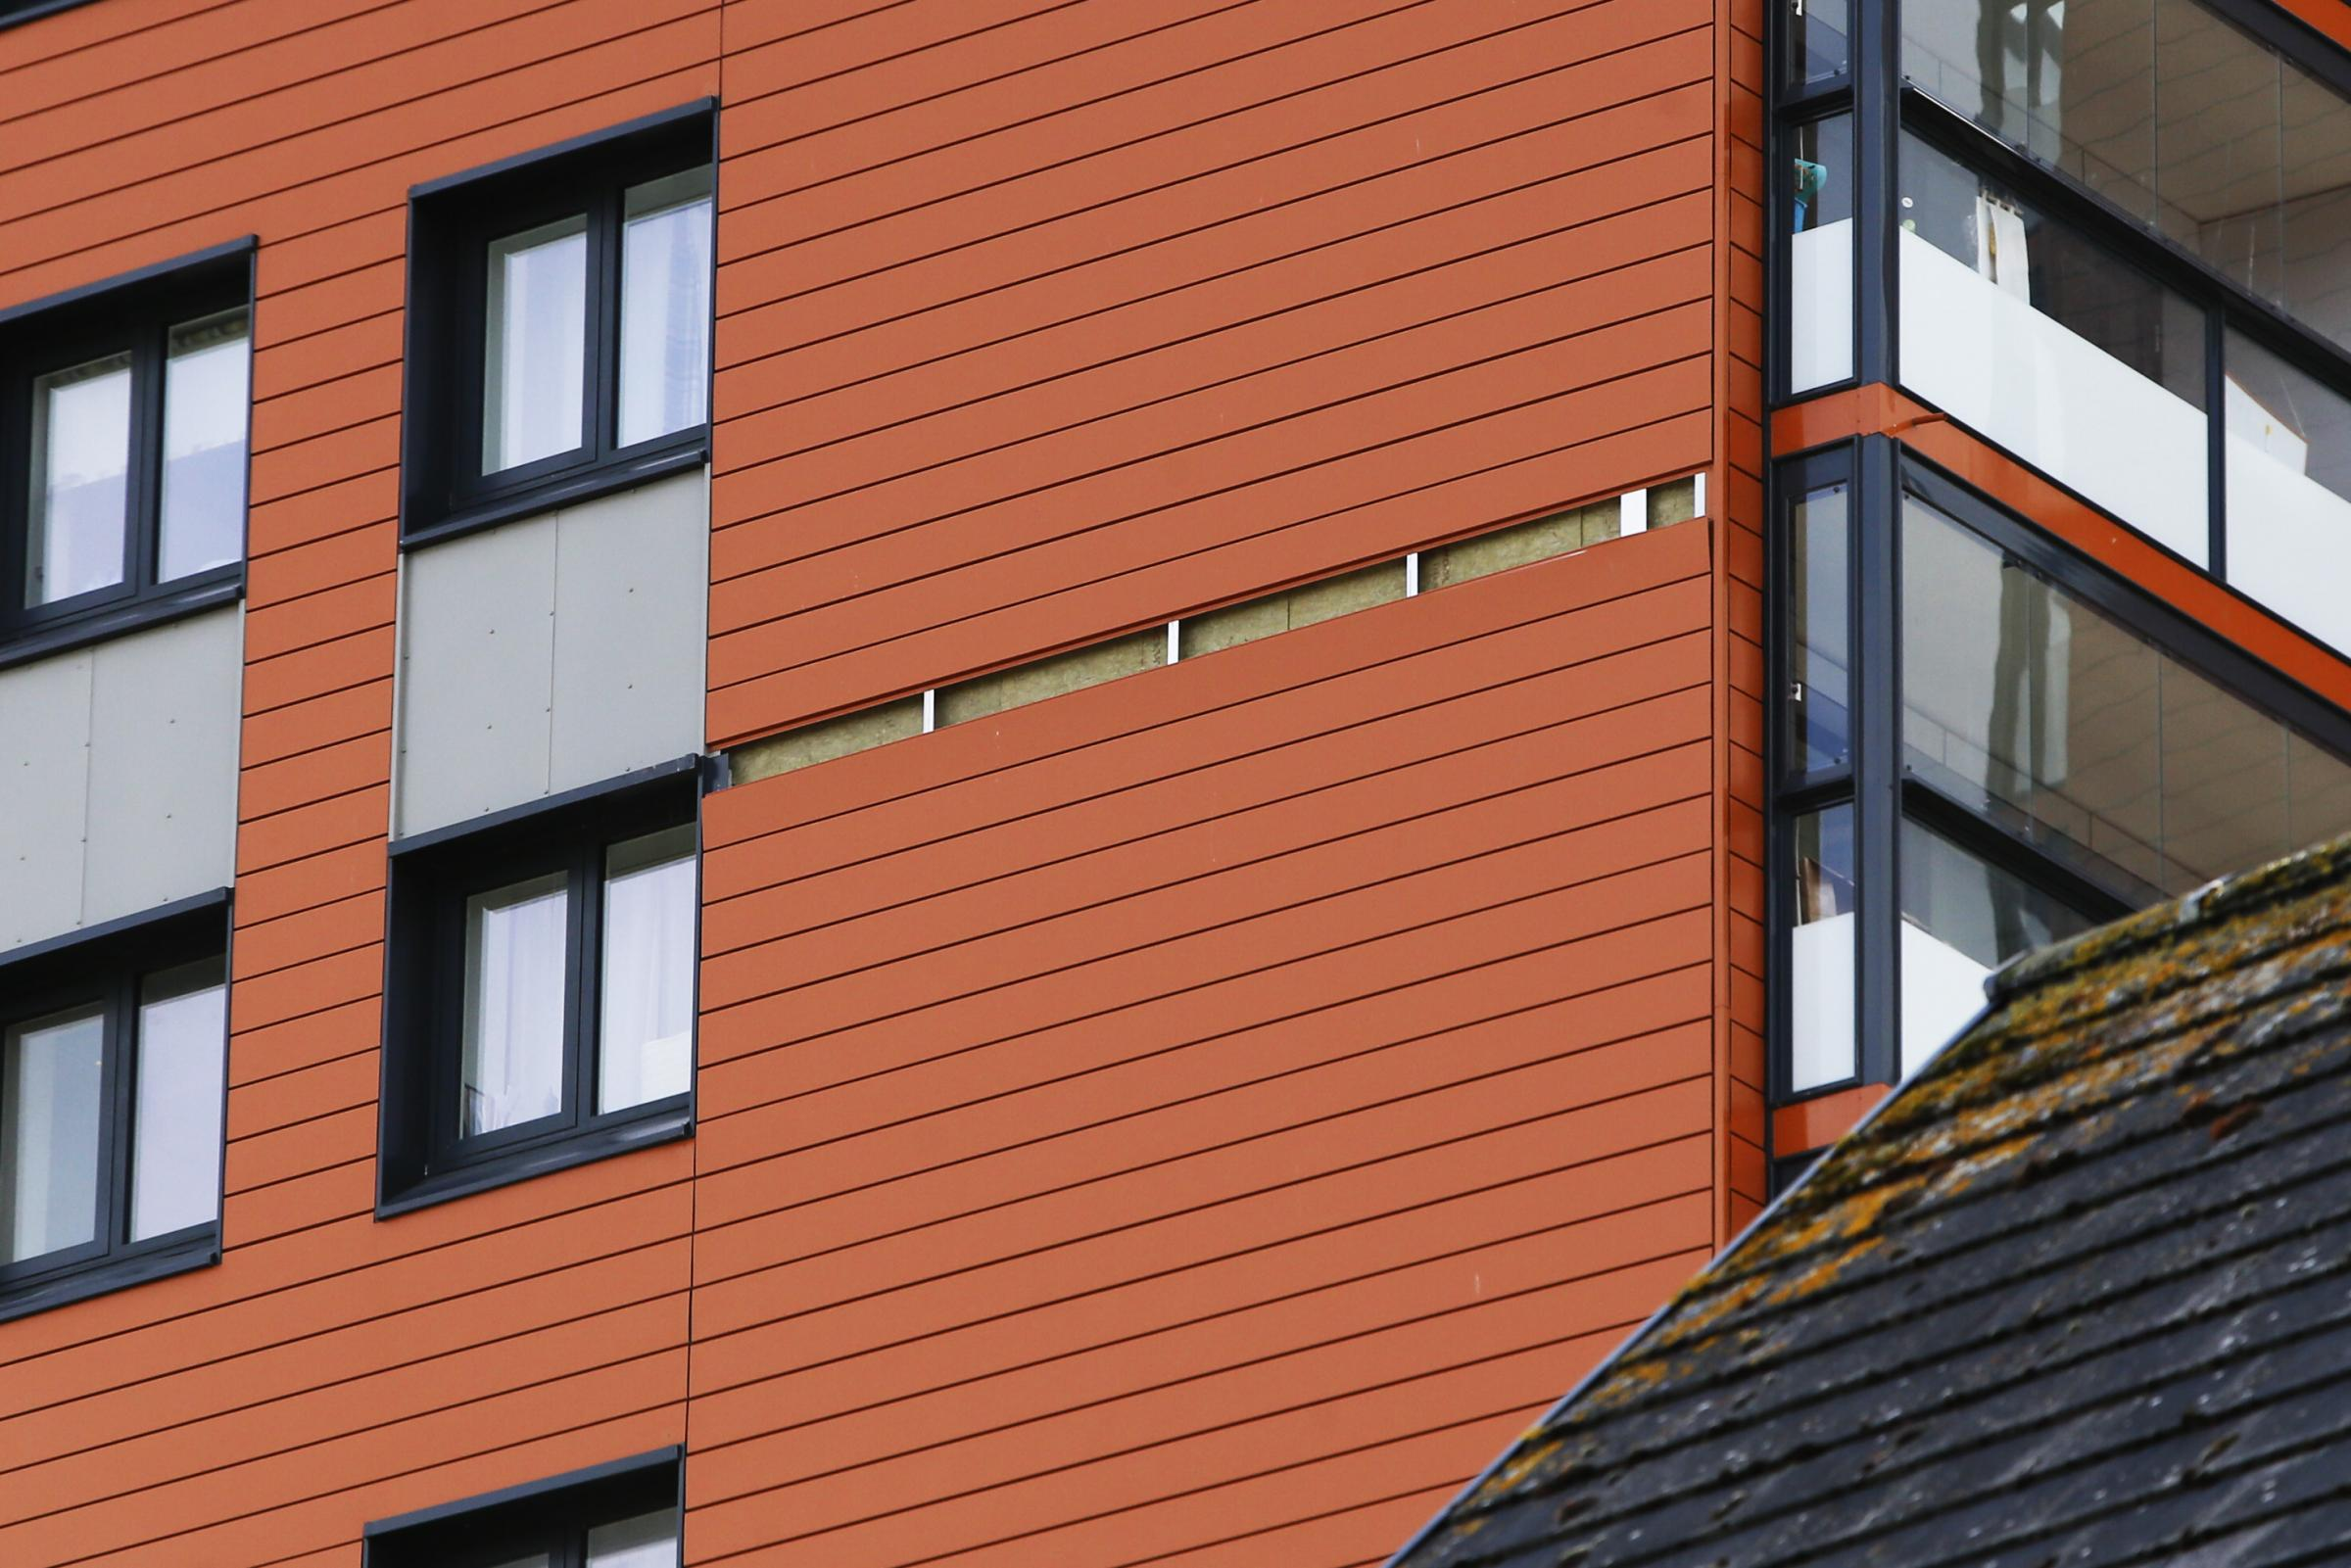 Cladding 'comes off' tower block in high winds